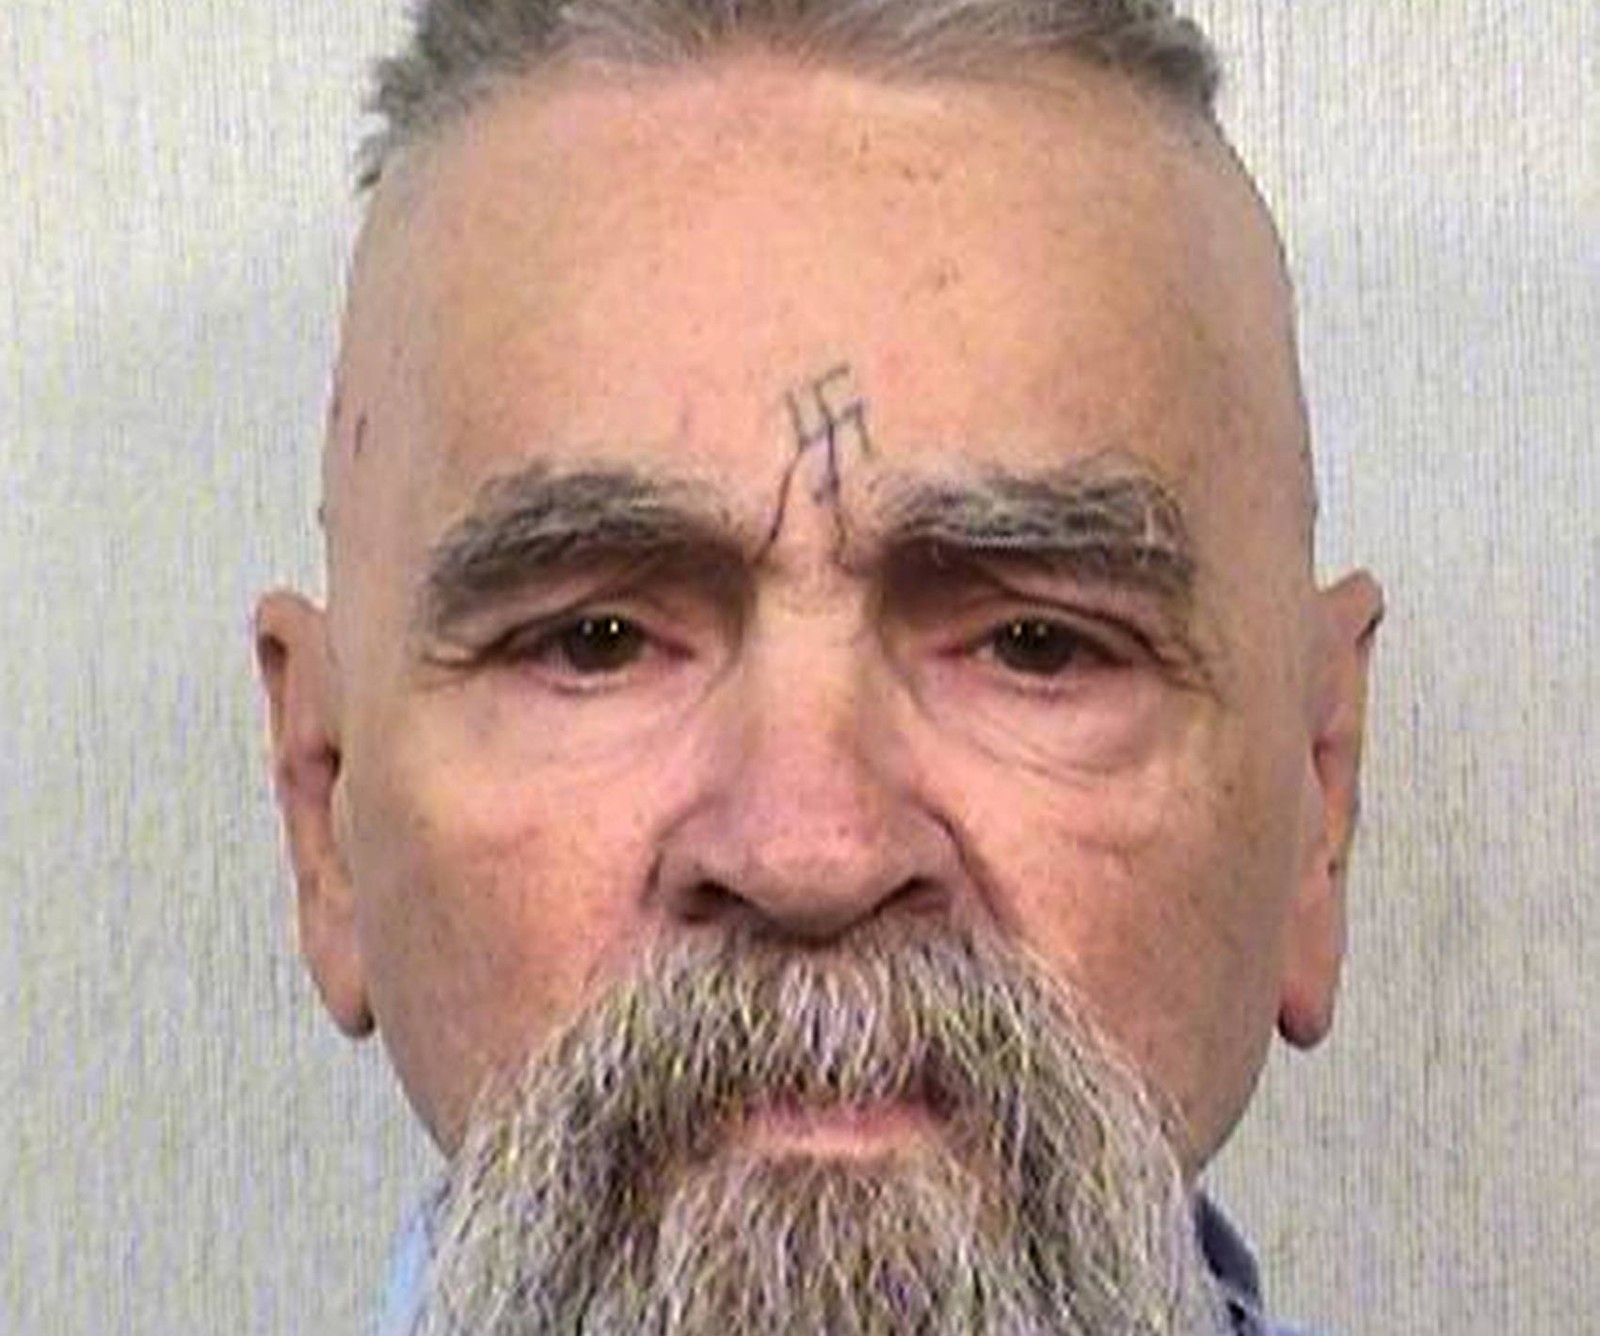 Assassino Charles Manson é internado em estado grave